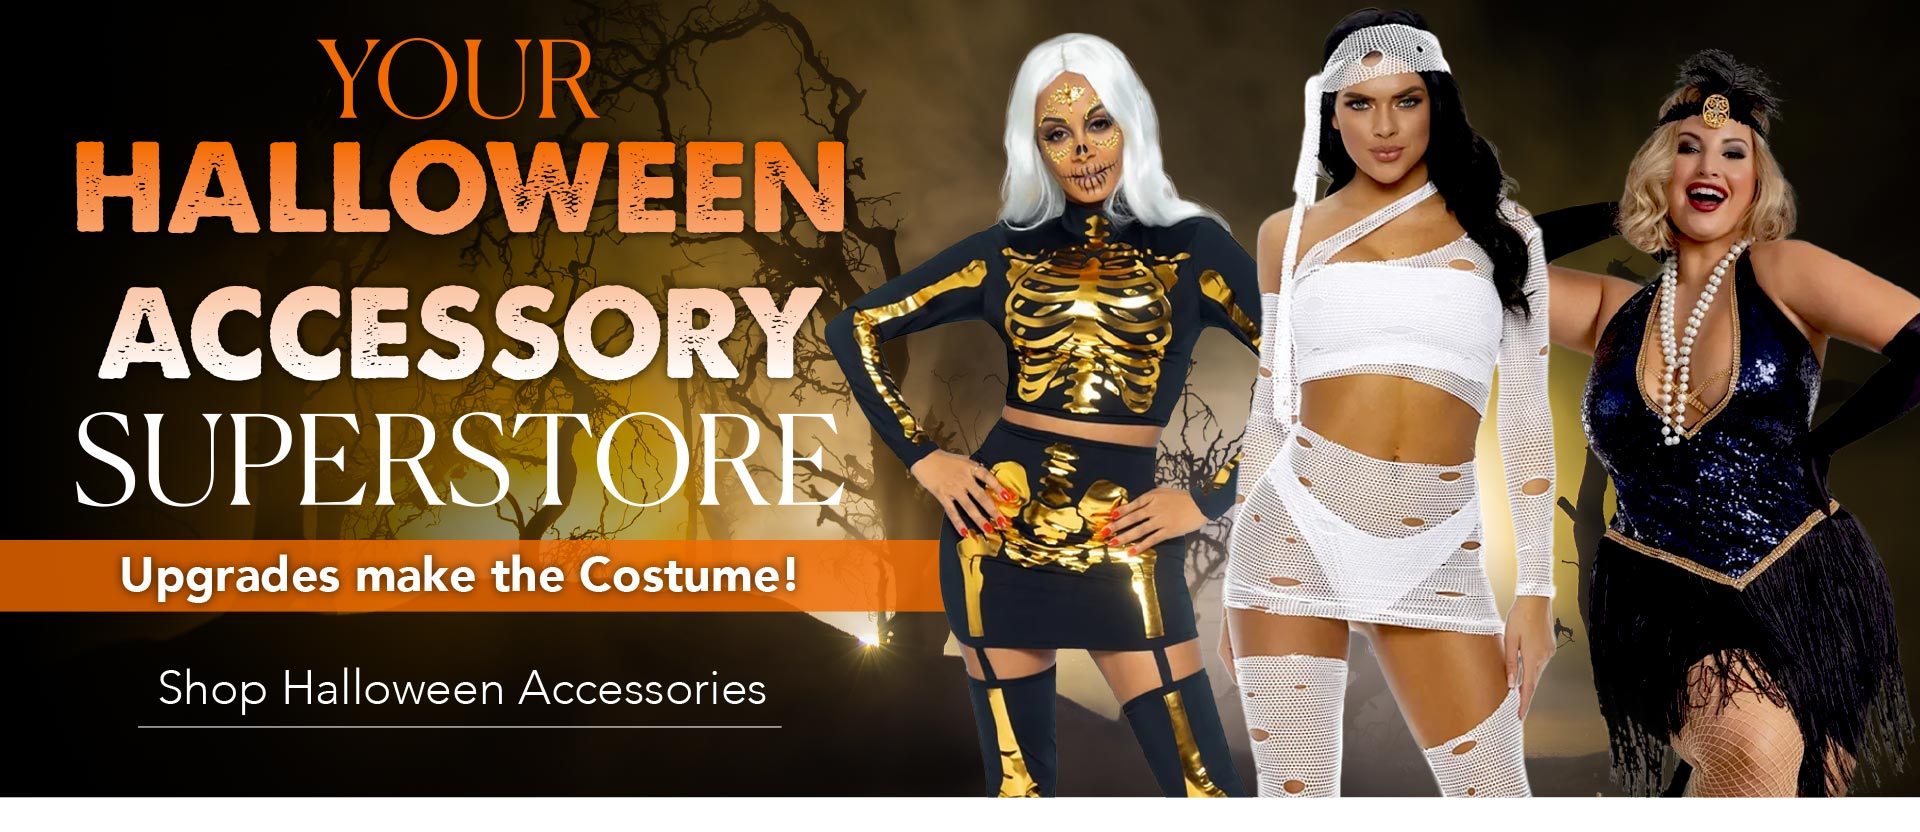 Your Halloween Accessory Superstore - Upgrades make the Costume - Shop Halloween Accessories